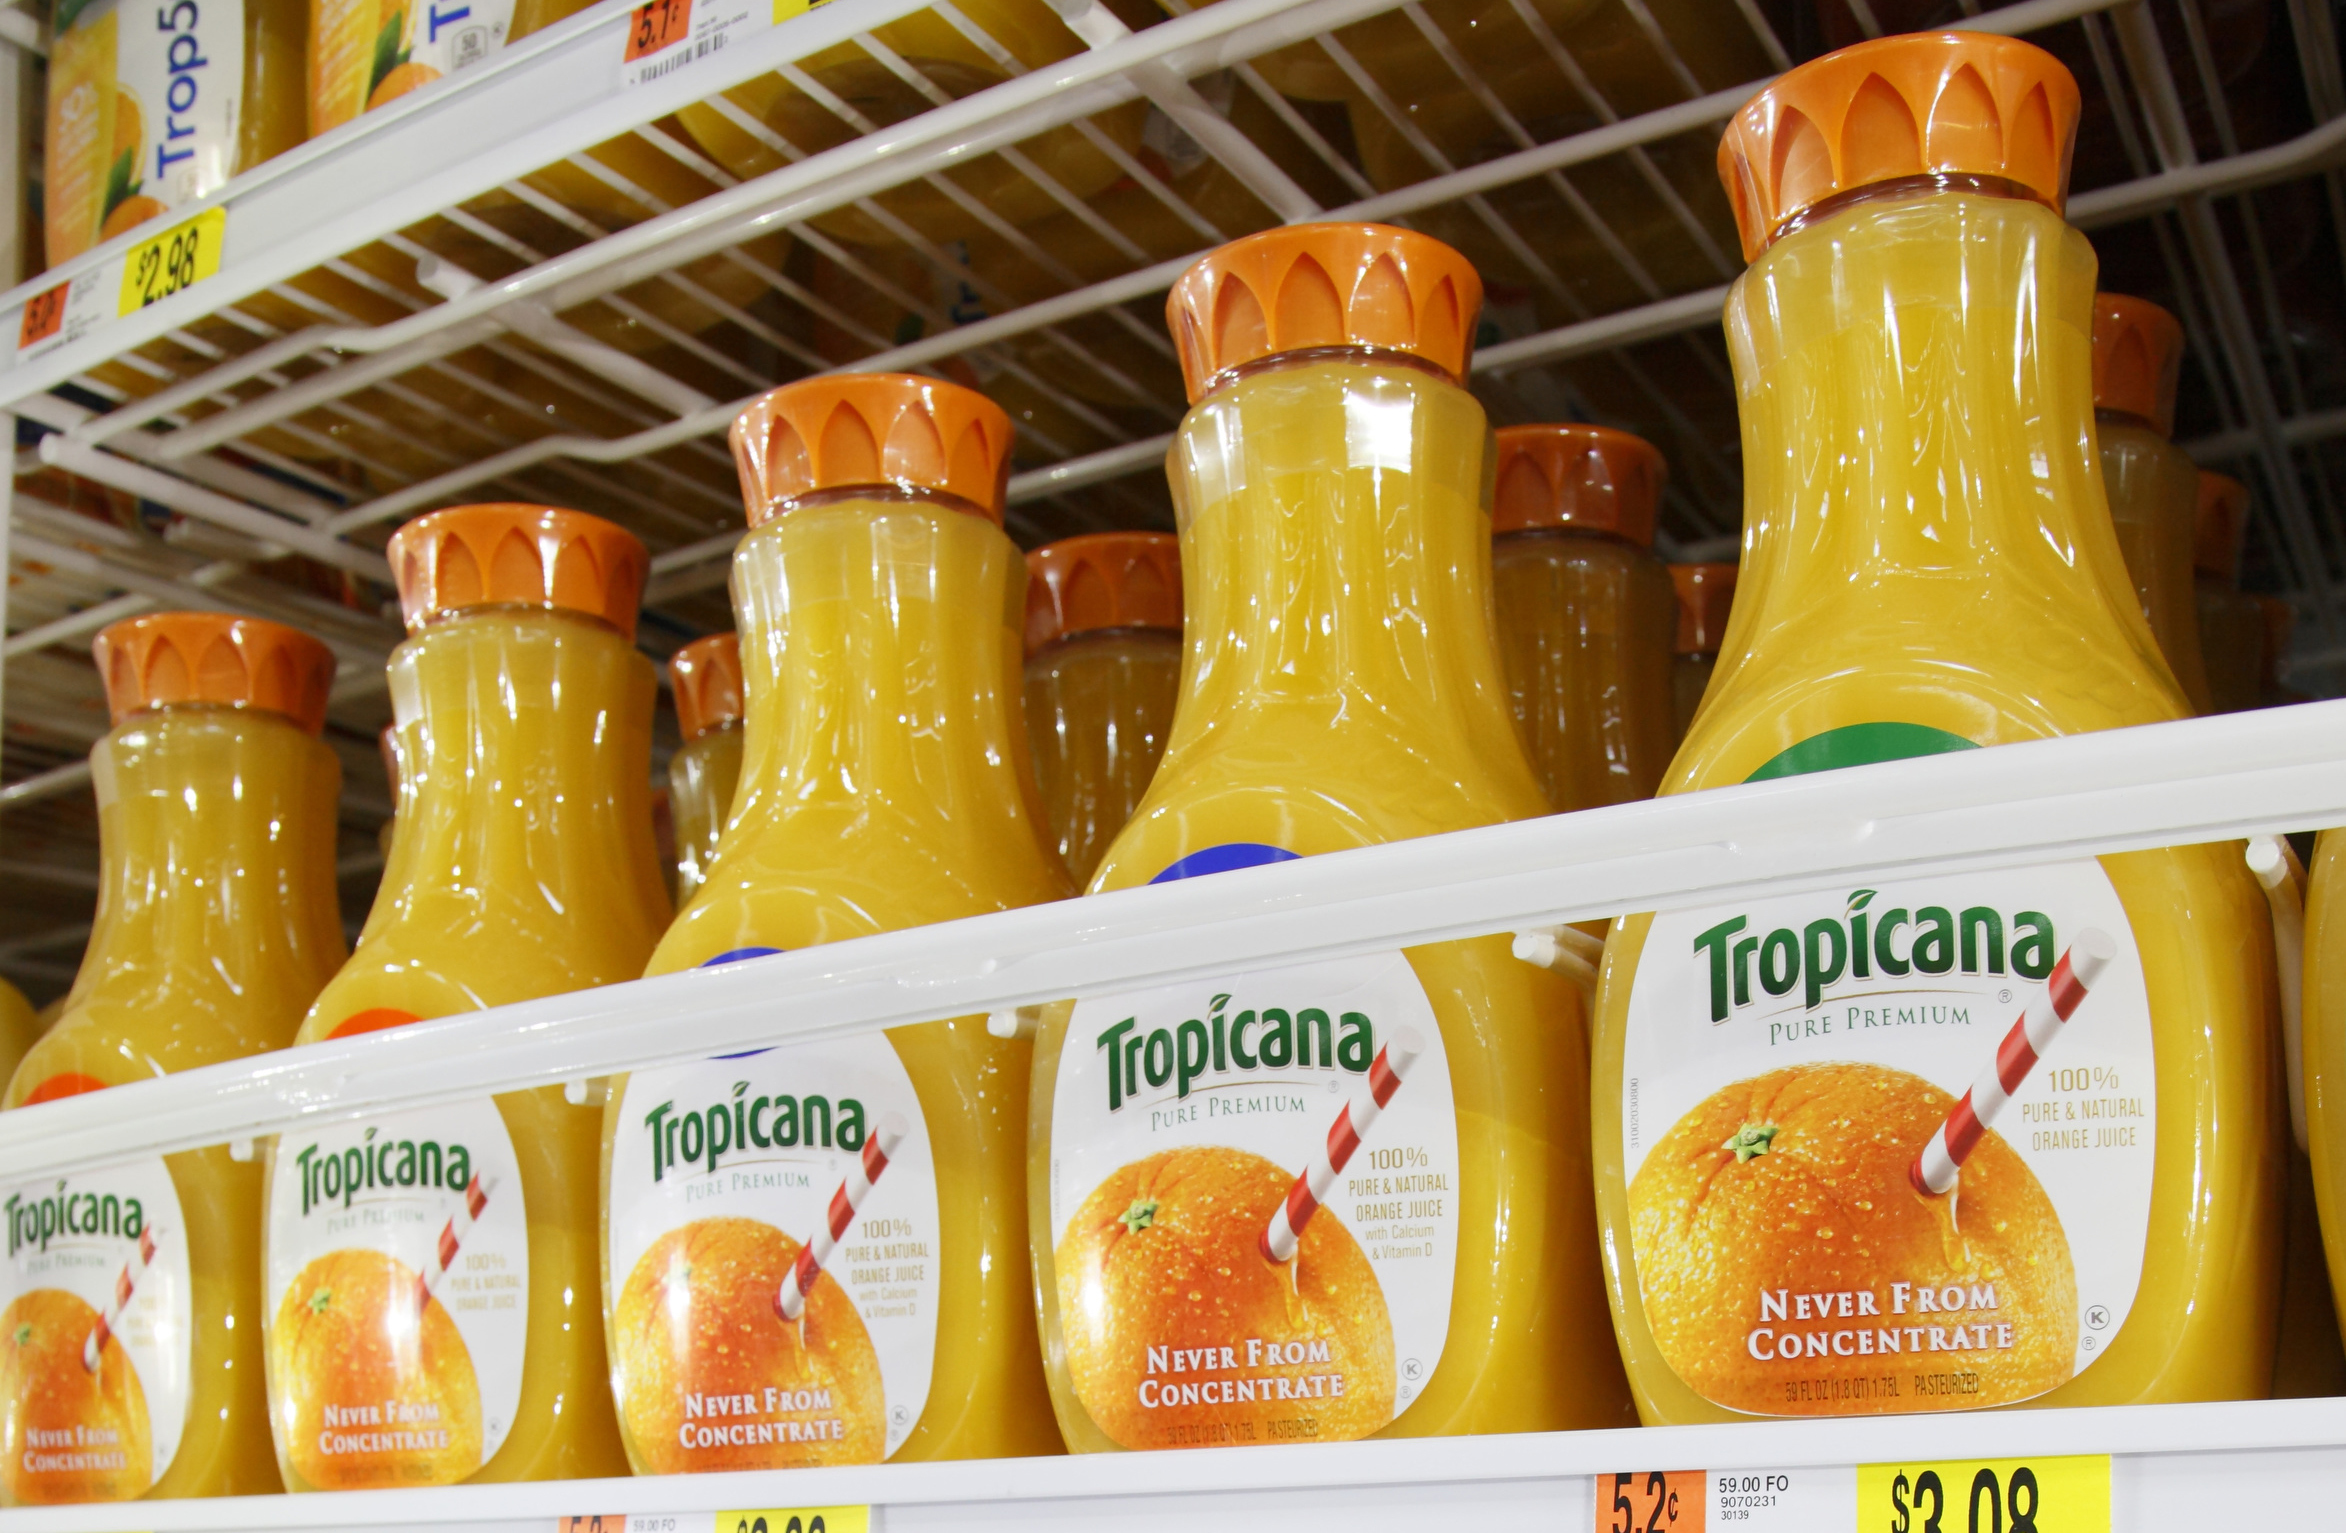 Pepsico's Tropicana juice is seen on display at a new Wal-Mart store in Chicago, in a January 24, 2012 file photo.